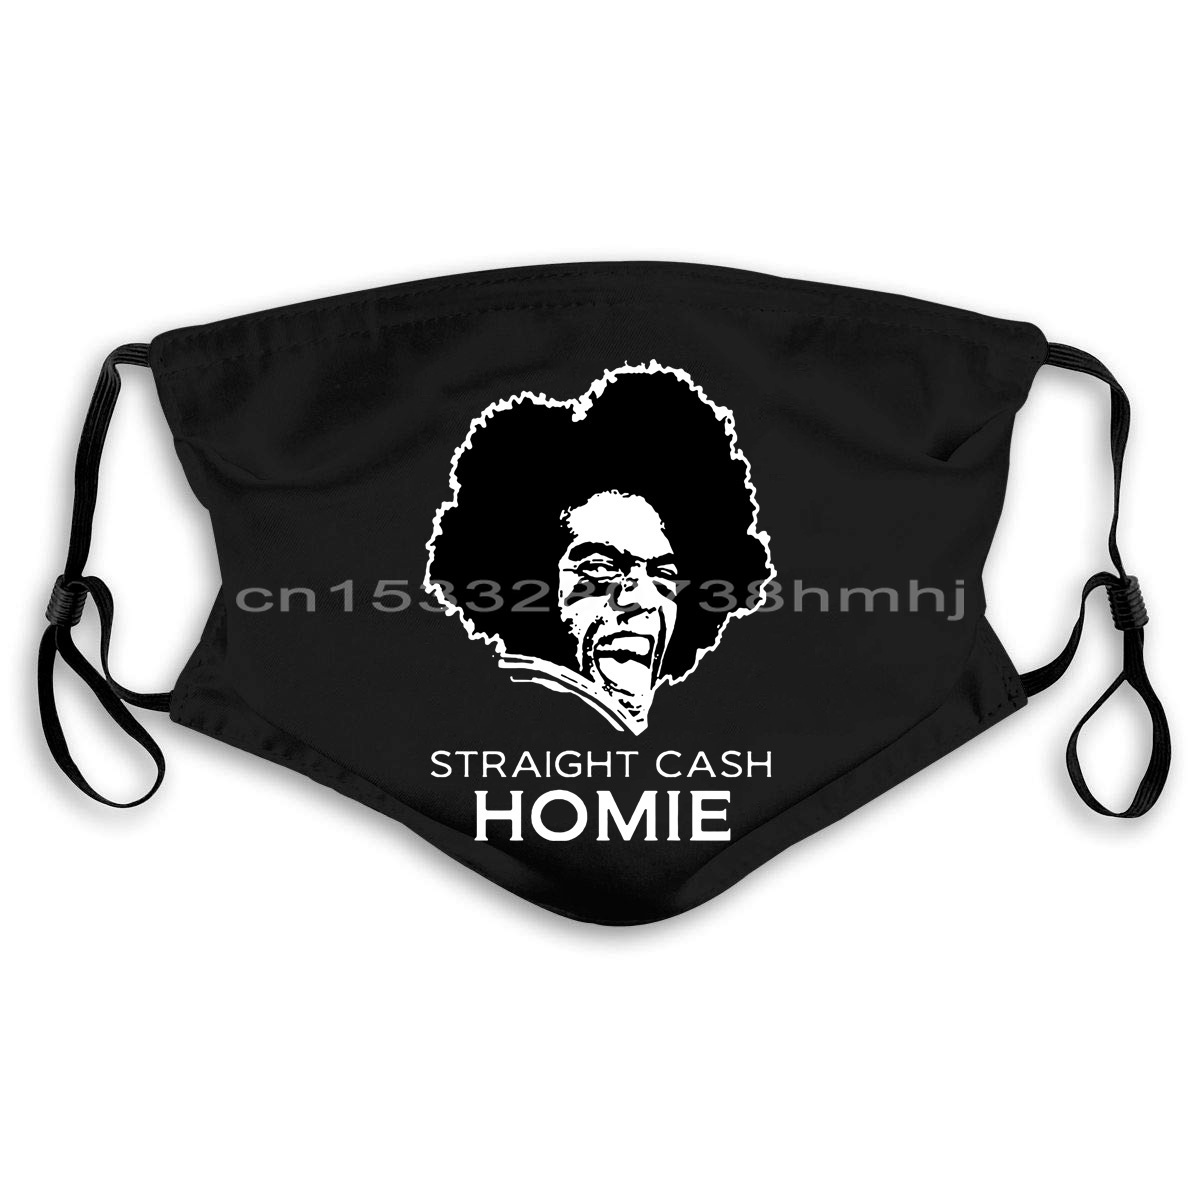 <font><b>Randy</b></font> <font><b>Moss</b></font> STRAIGHT CASH HOMIE Soft Ringspun Cotton Masks new Cool Casual pride Mask men Unisex New Fashion Mask Loose; image